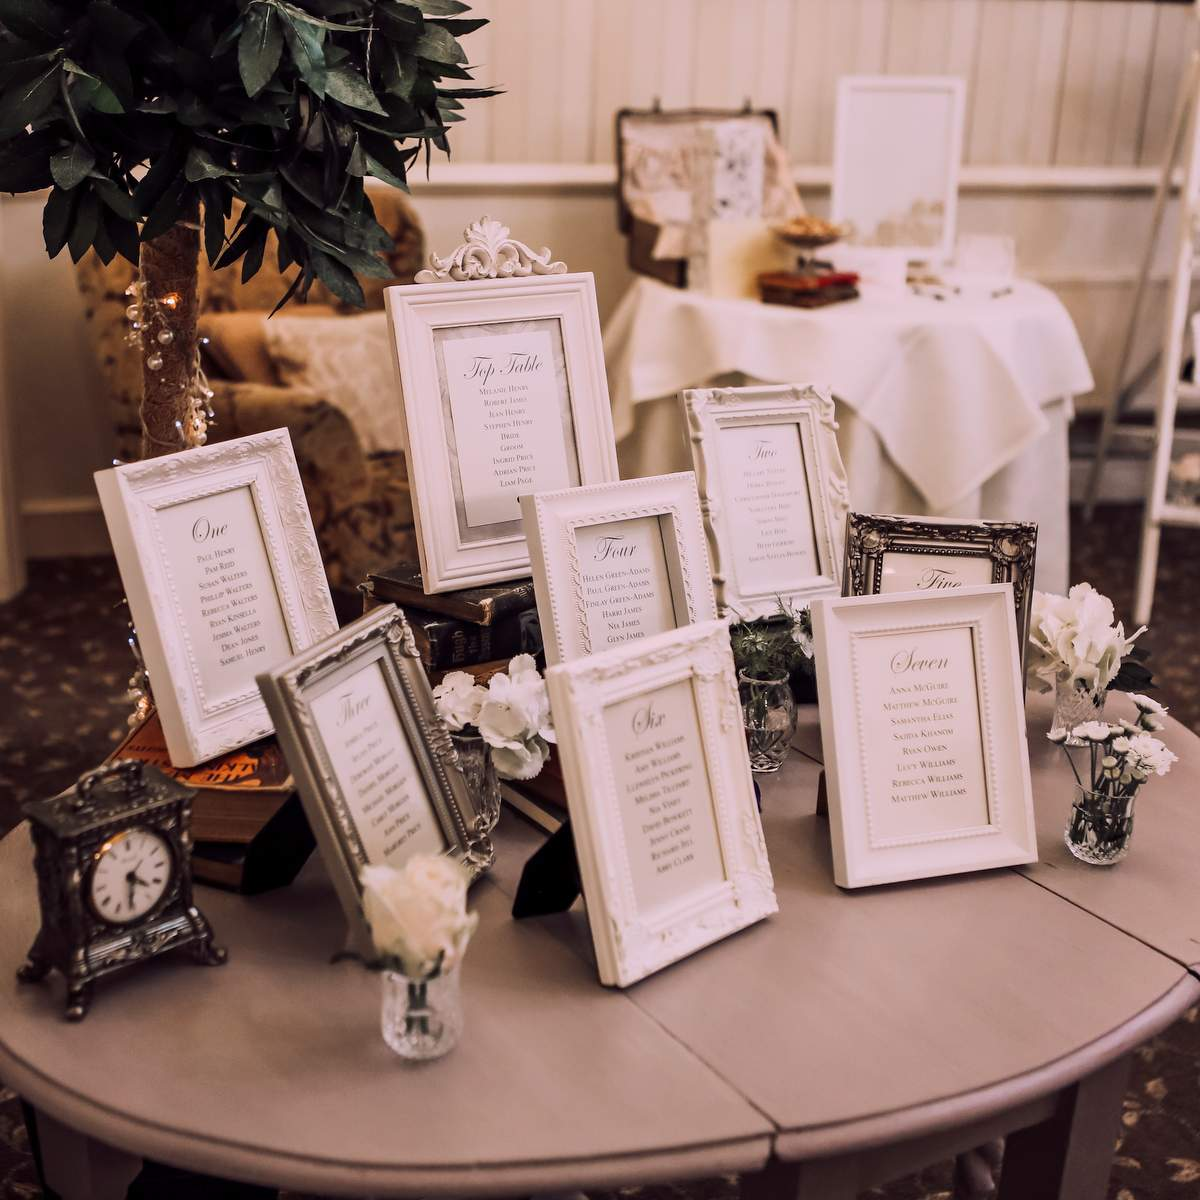 a display of vintage style white photo frames making up a wedding seating plan